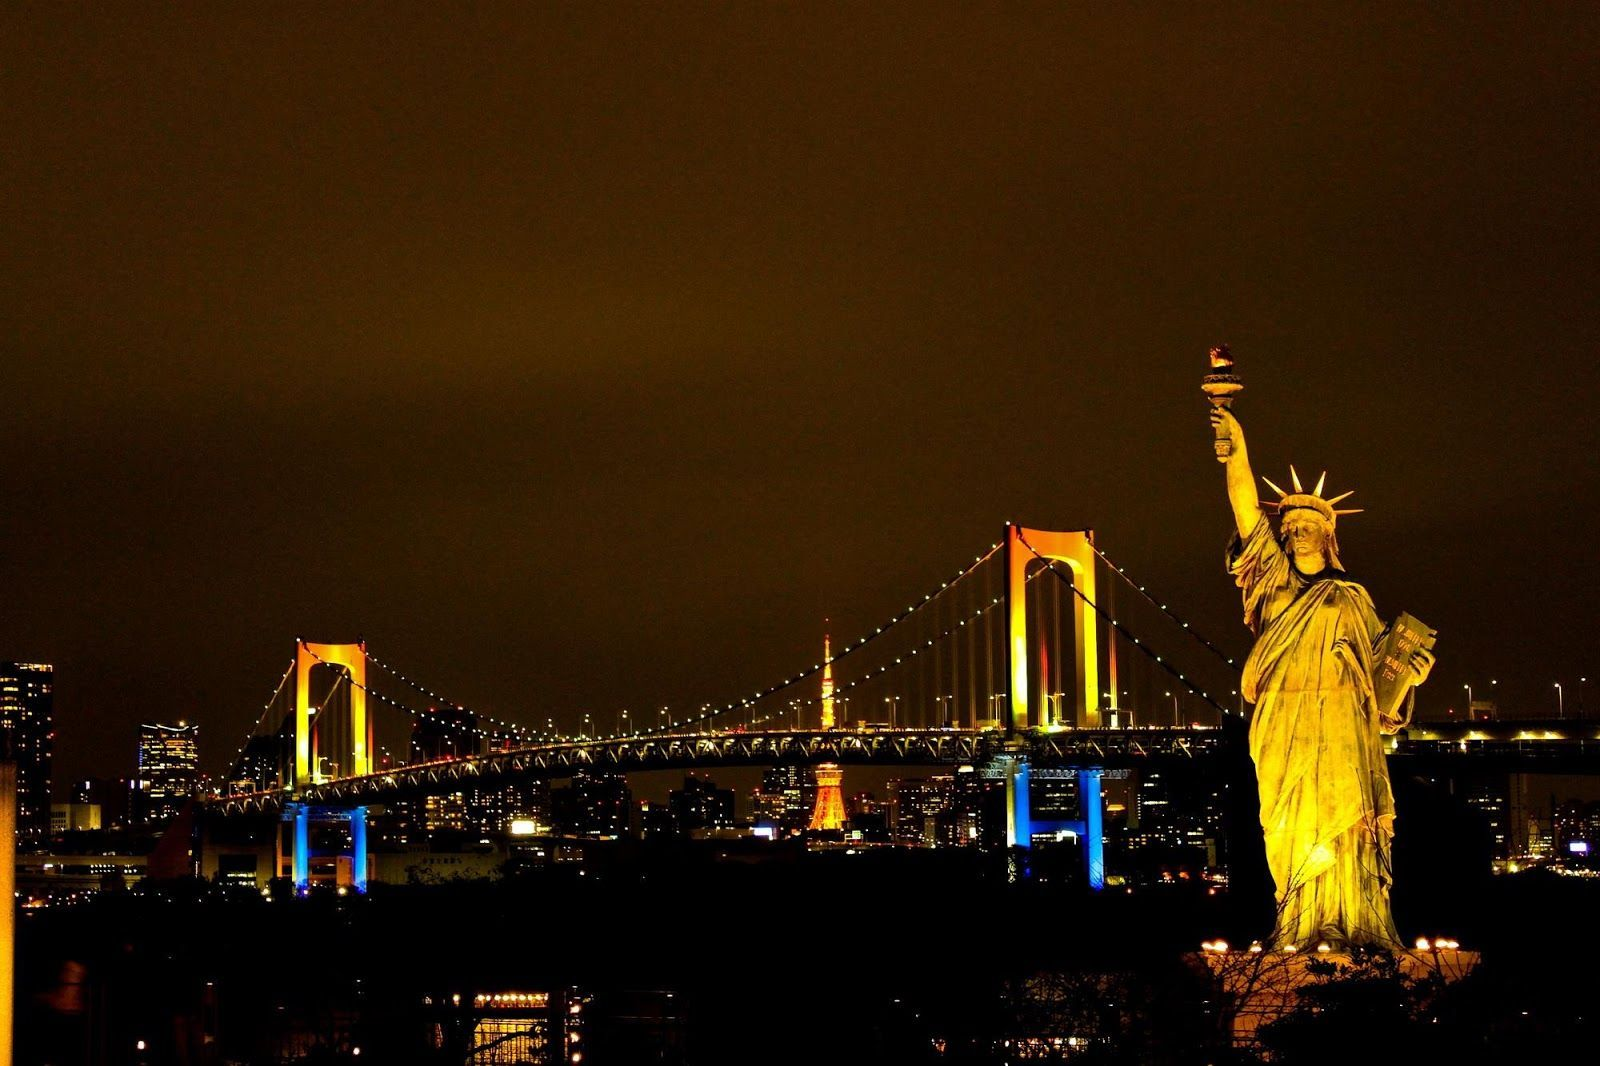 Statue of Liberty at Night Wallpapers